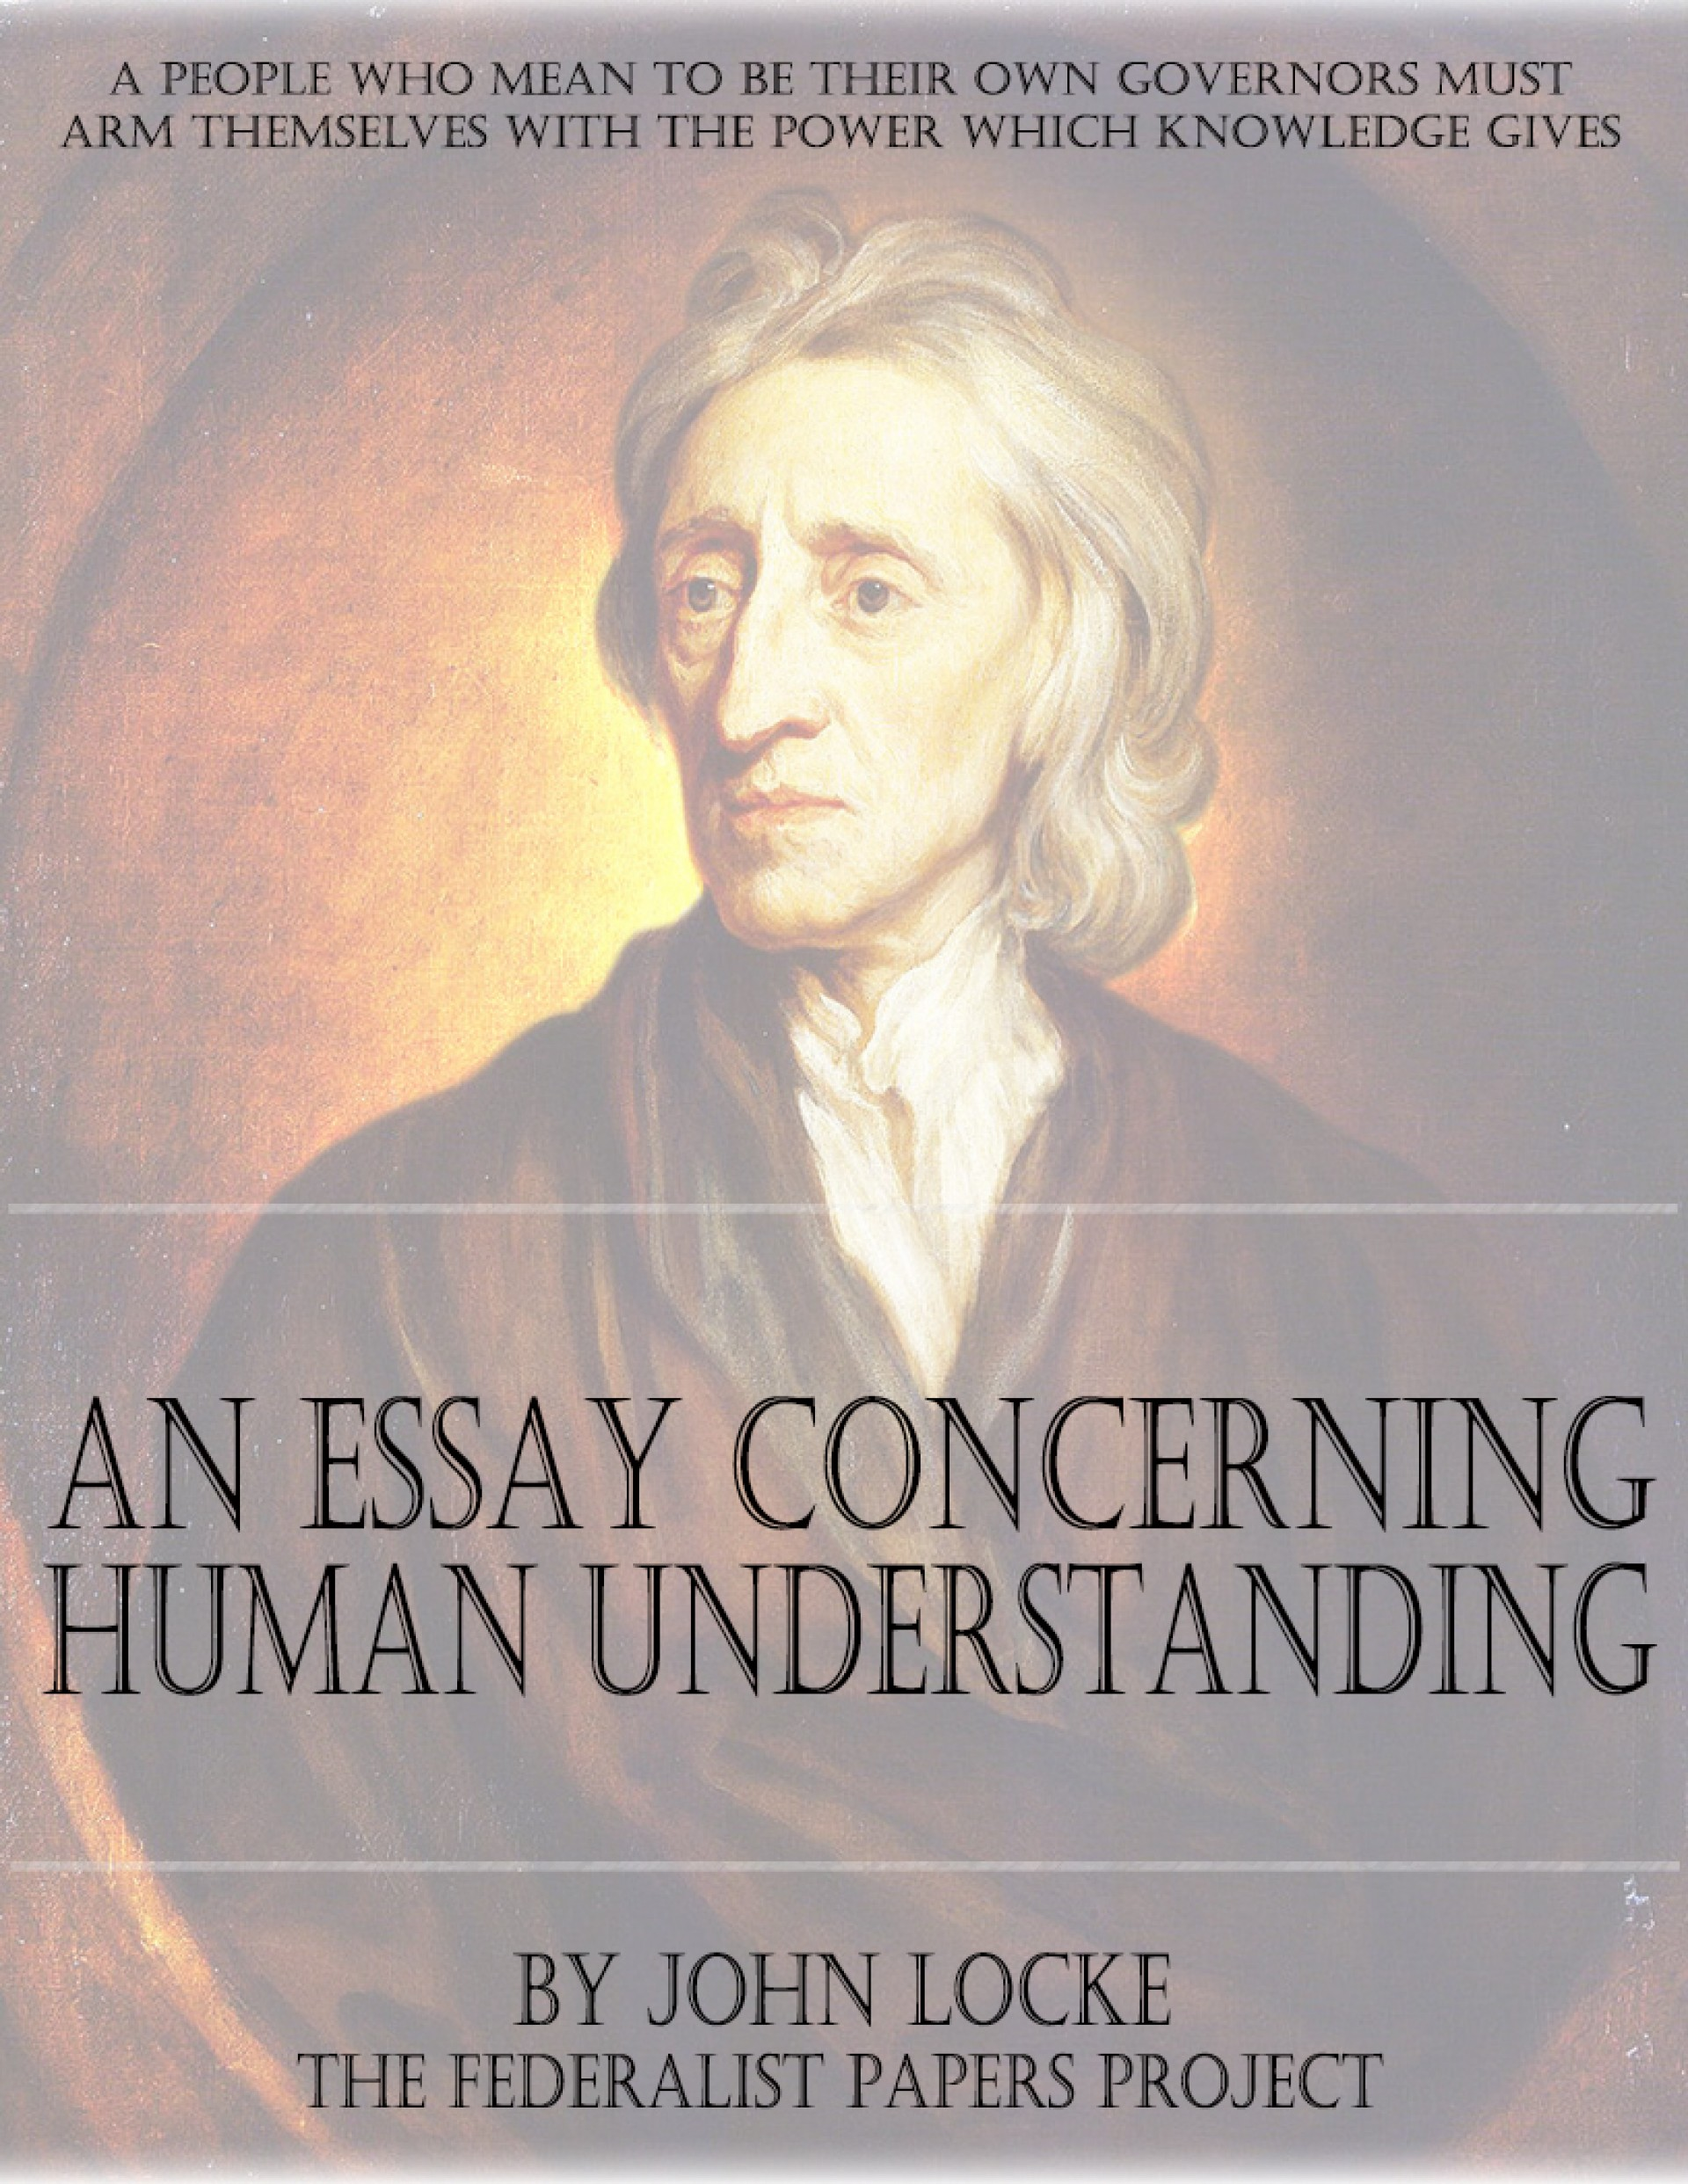 002 Essay Example Locke Concerning Human Understanding John An Cover Best Summary Book 2 Full Text Pdf Gutenberg 1920